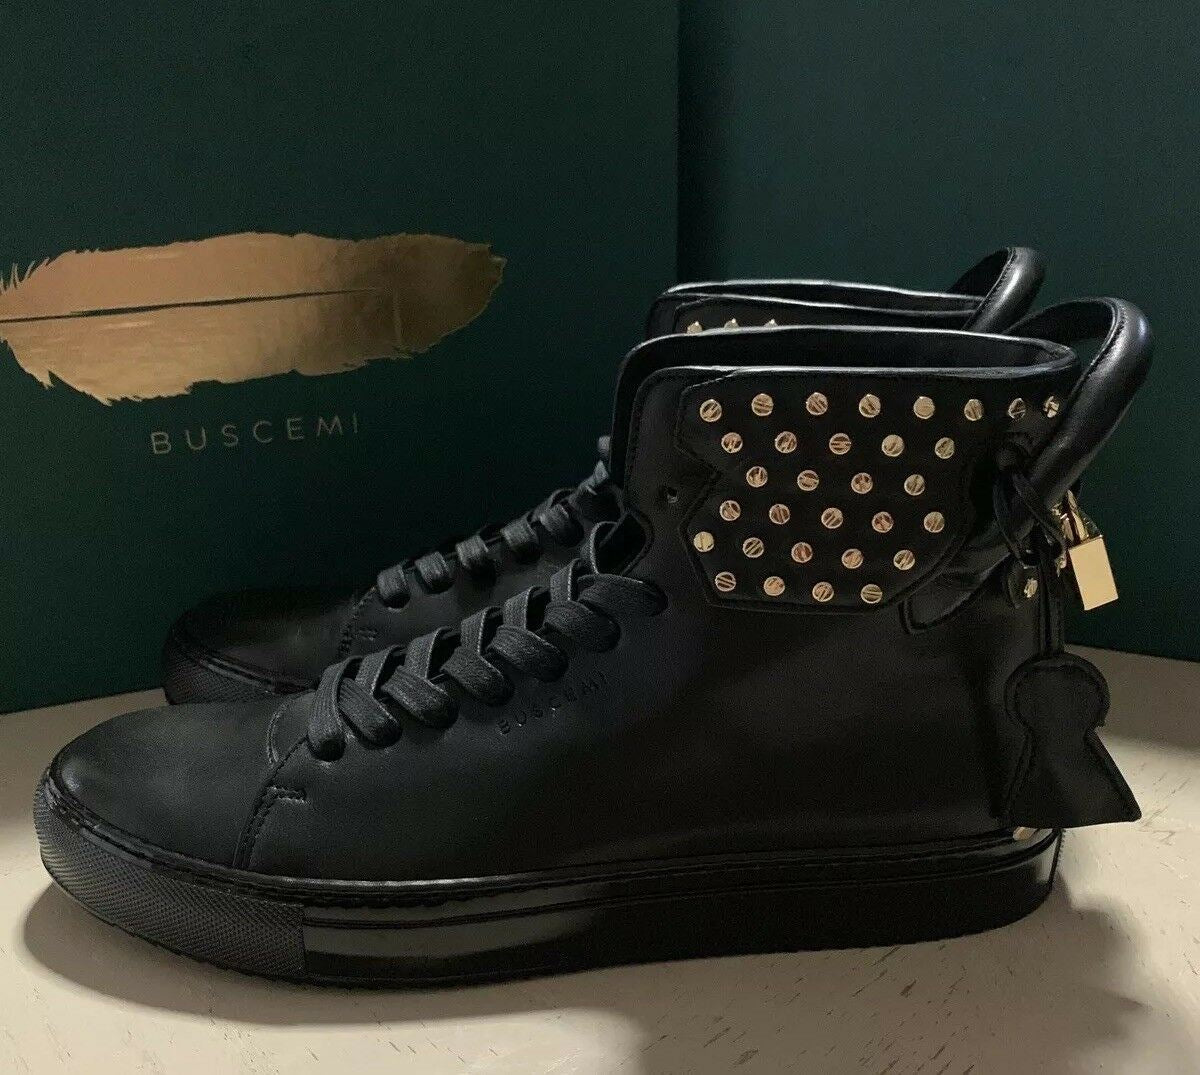 New $2570 BUSCEMI Men Leather High-Top Sneakers Black 9 US ( 42 Eu ) 1125SCSP15